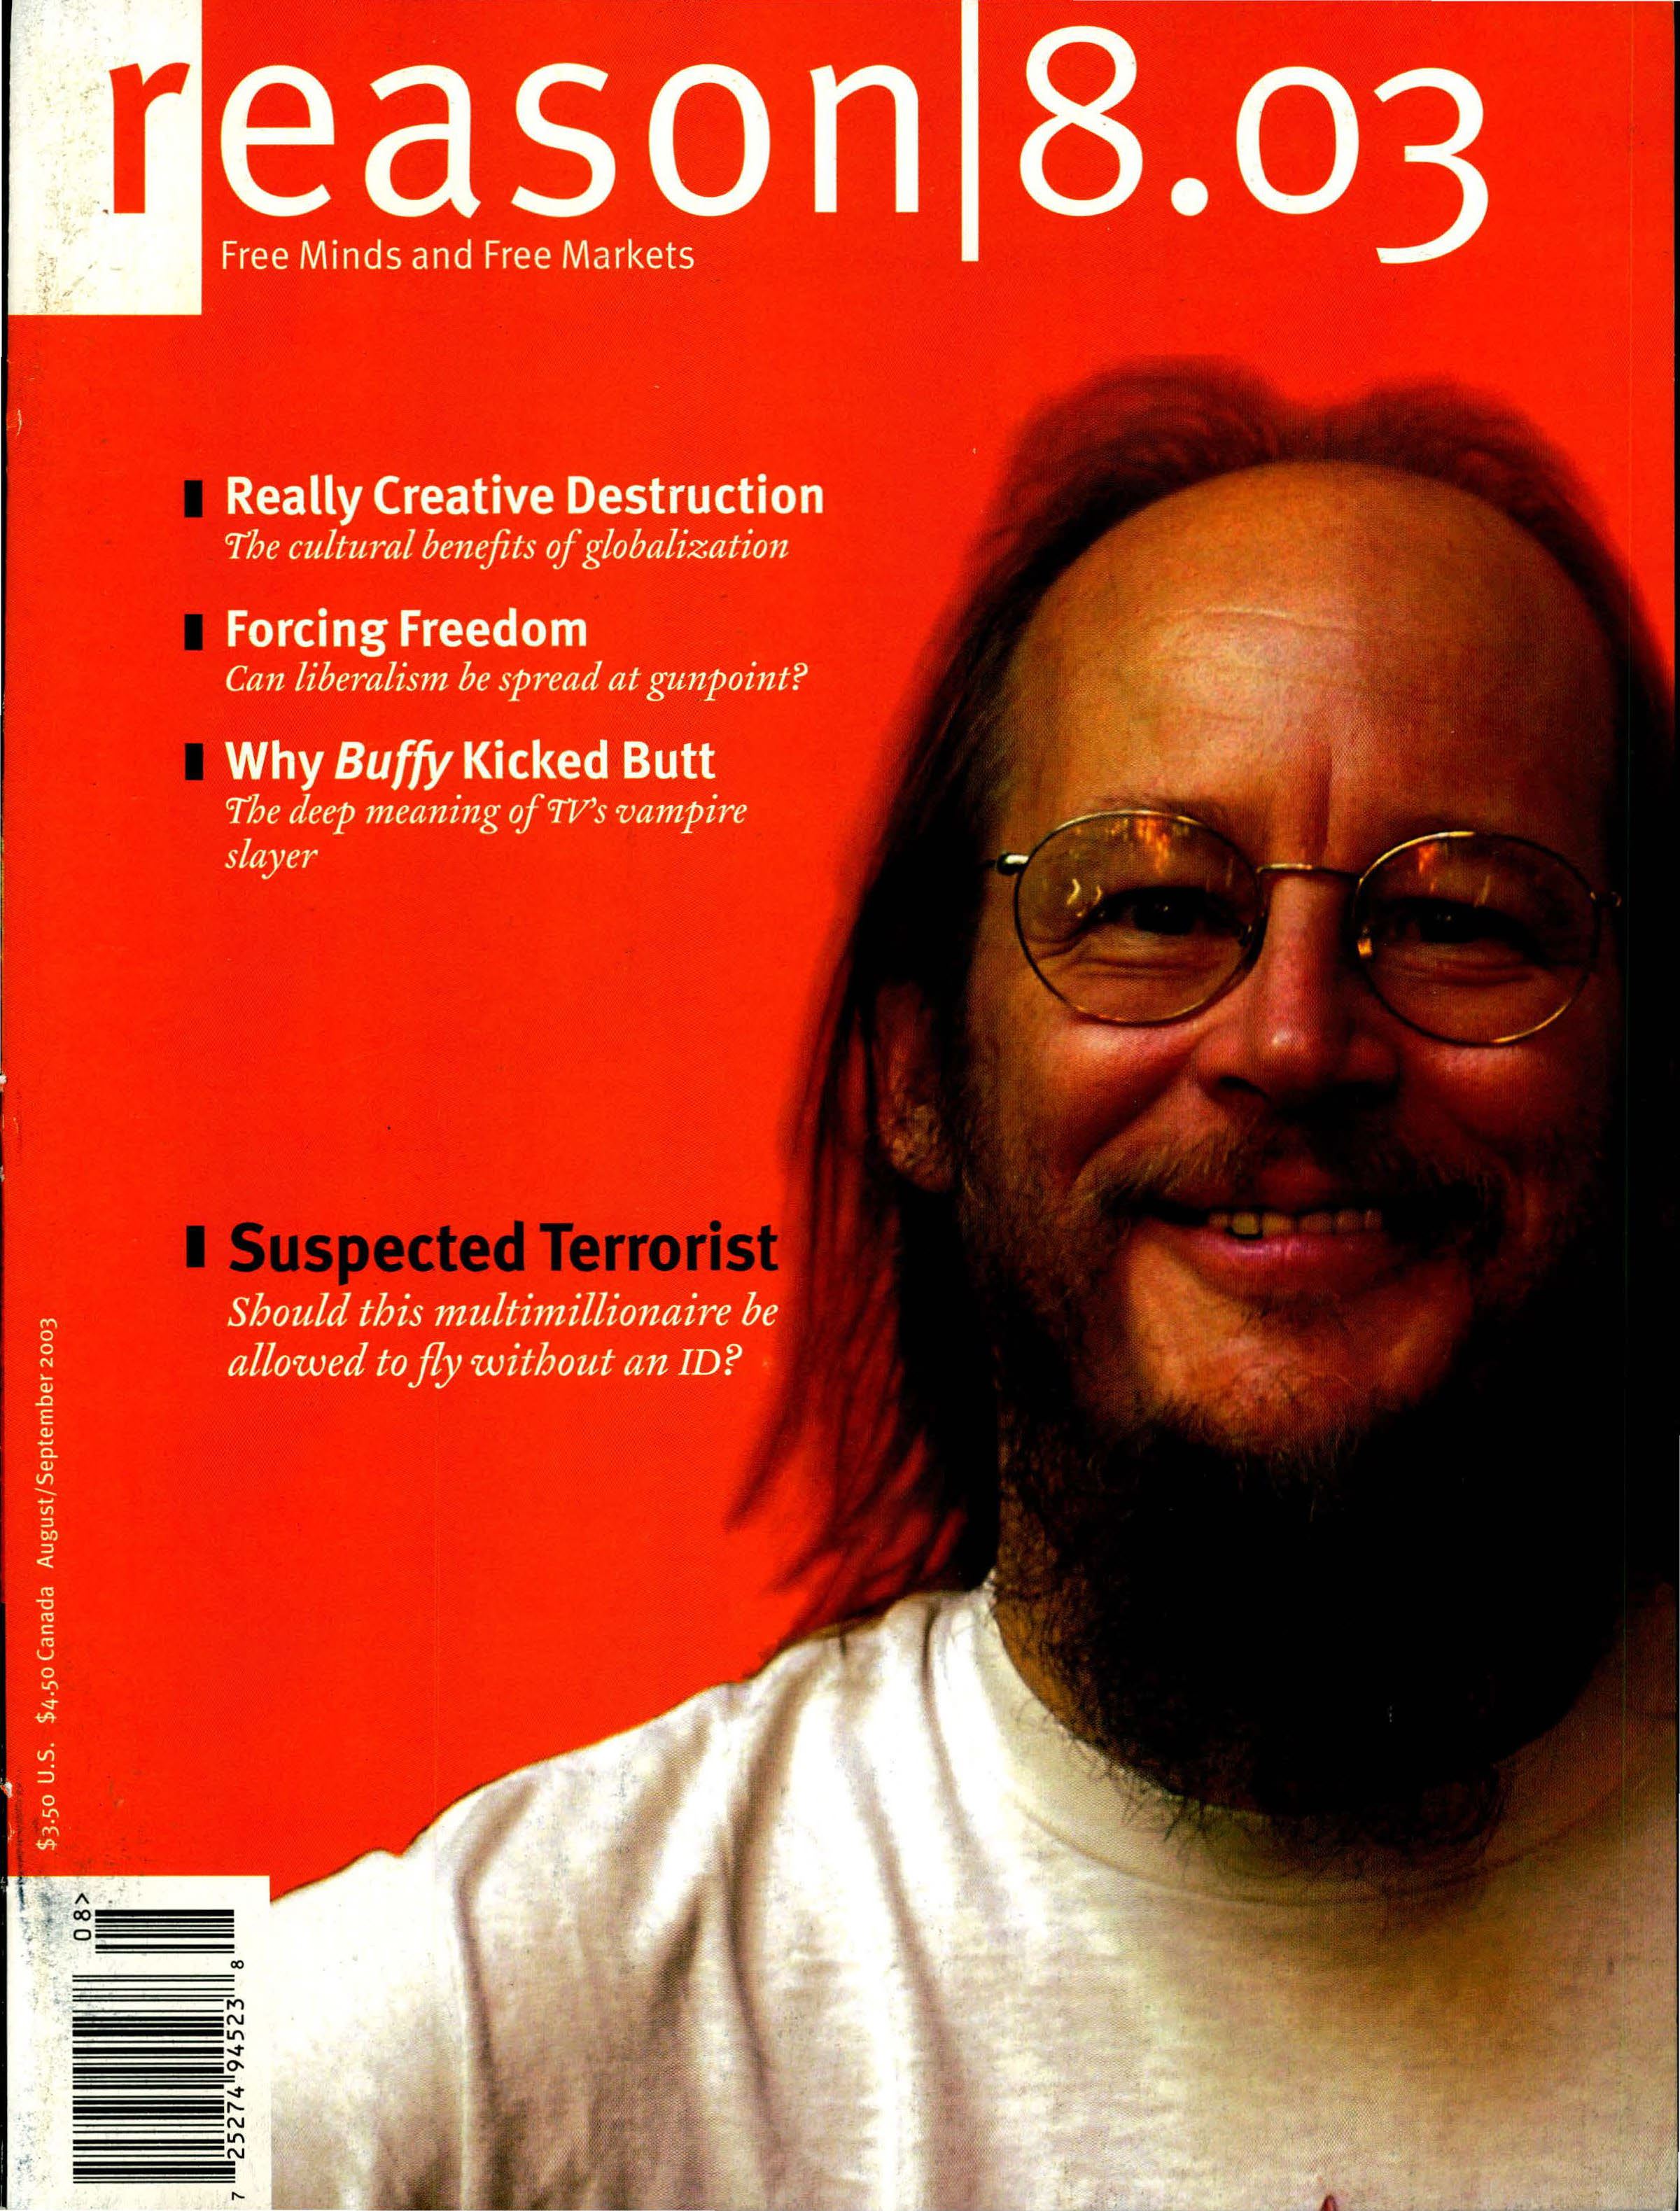 Reason Magazine, August/September 2003 cover image